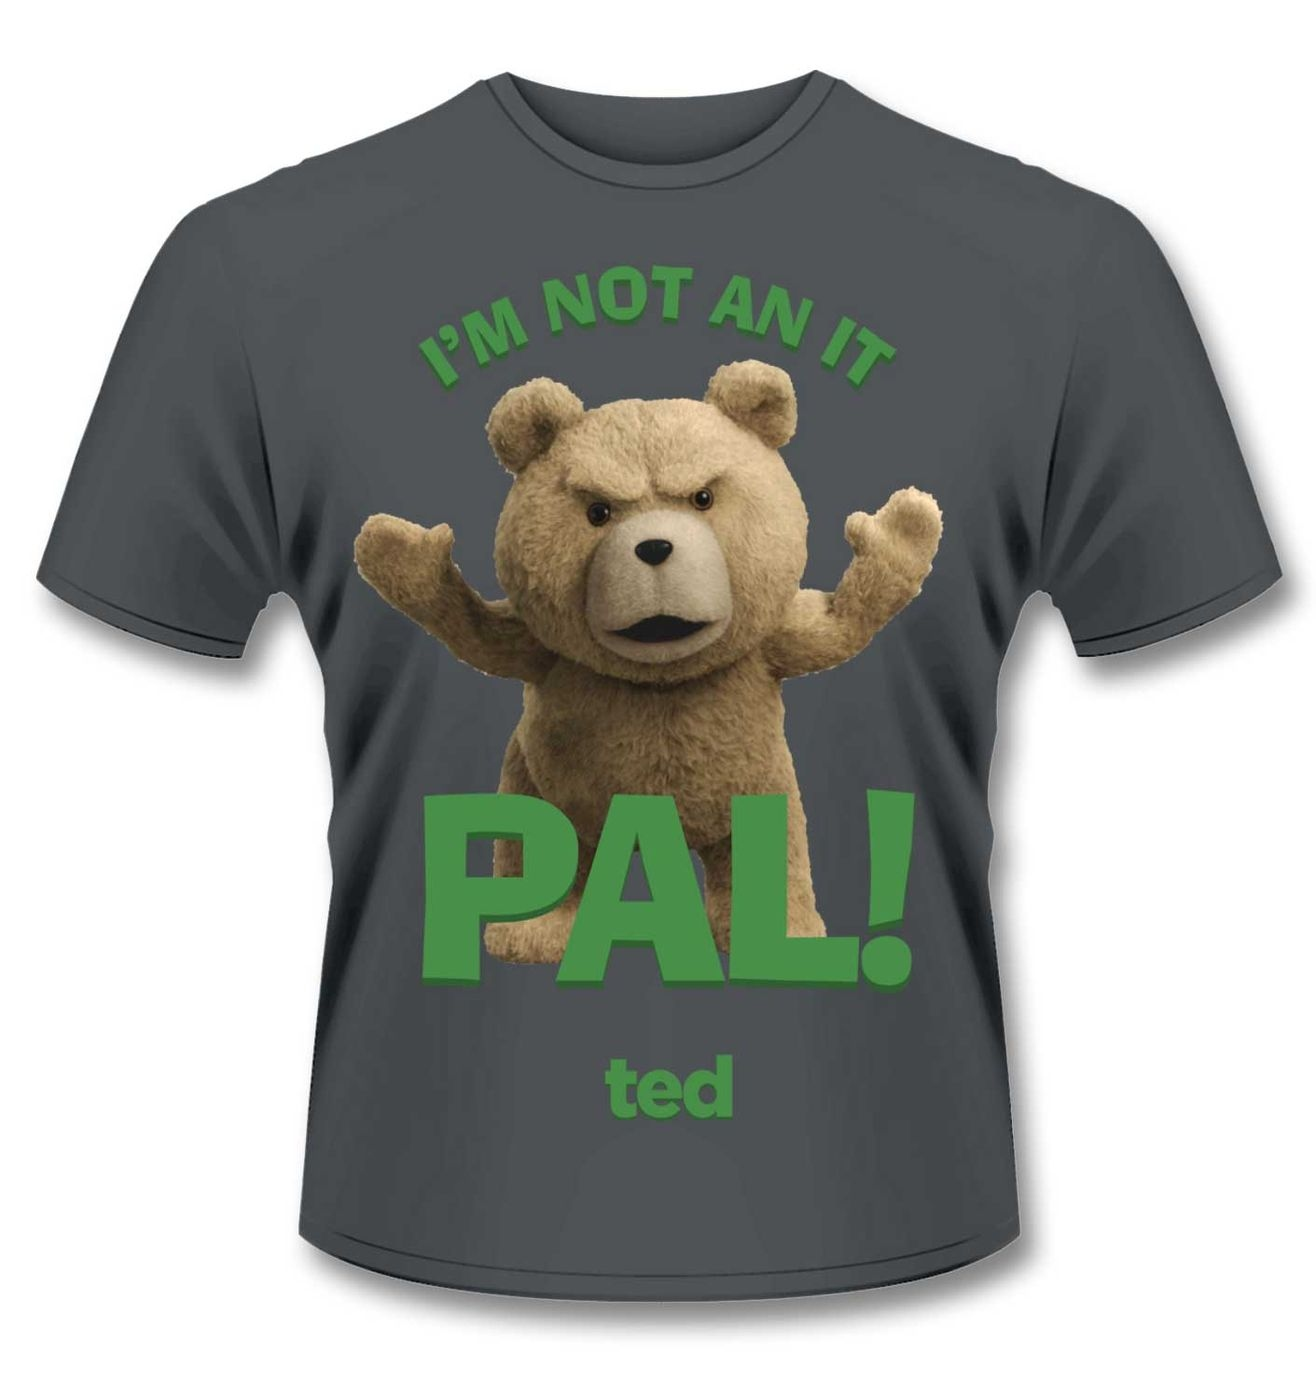 Official Ted Pal t-shirt